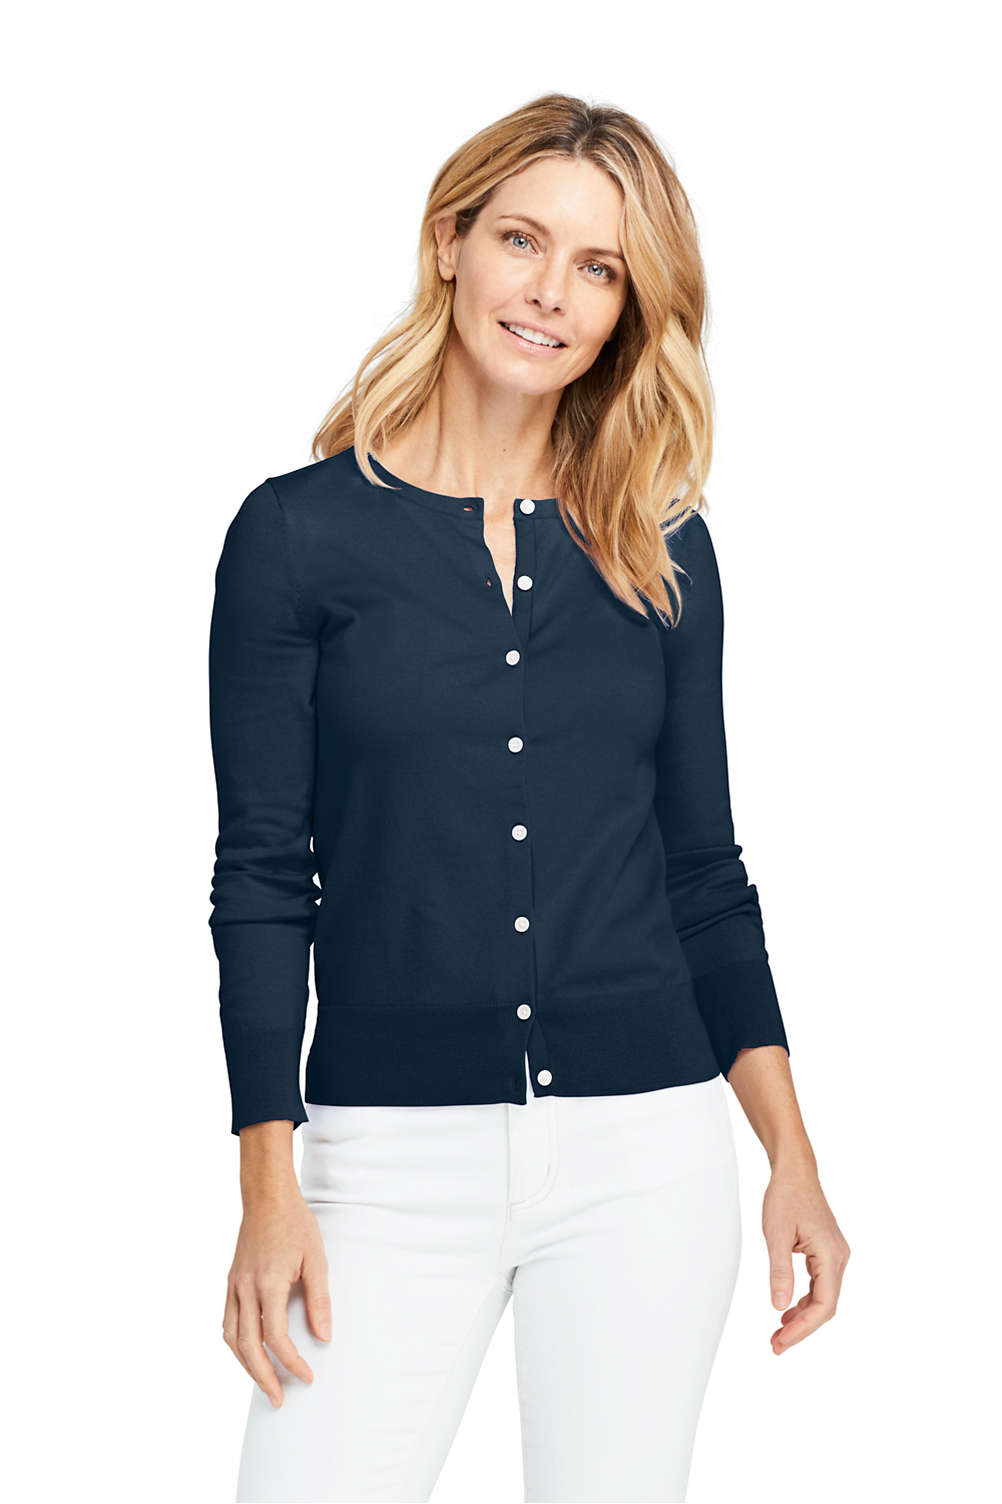 21211c285f5 Women's Supima Cotton Long Sleeve Cardigan Sweater from Lands' End